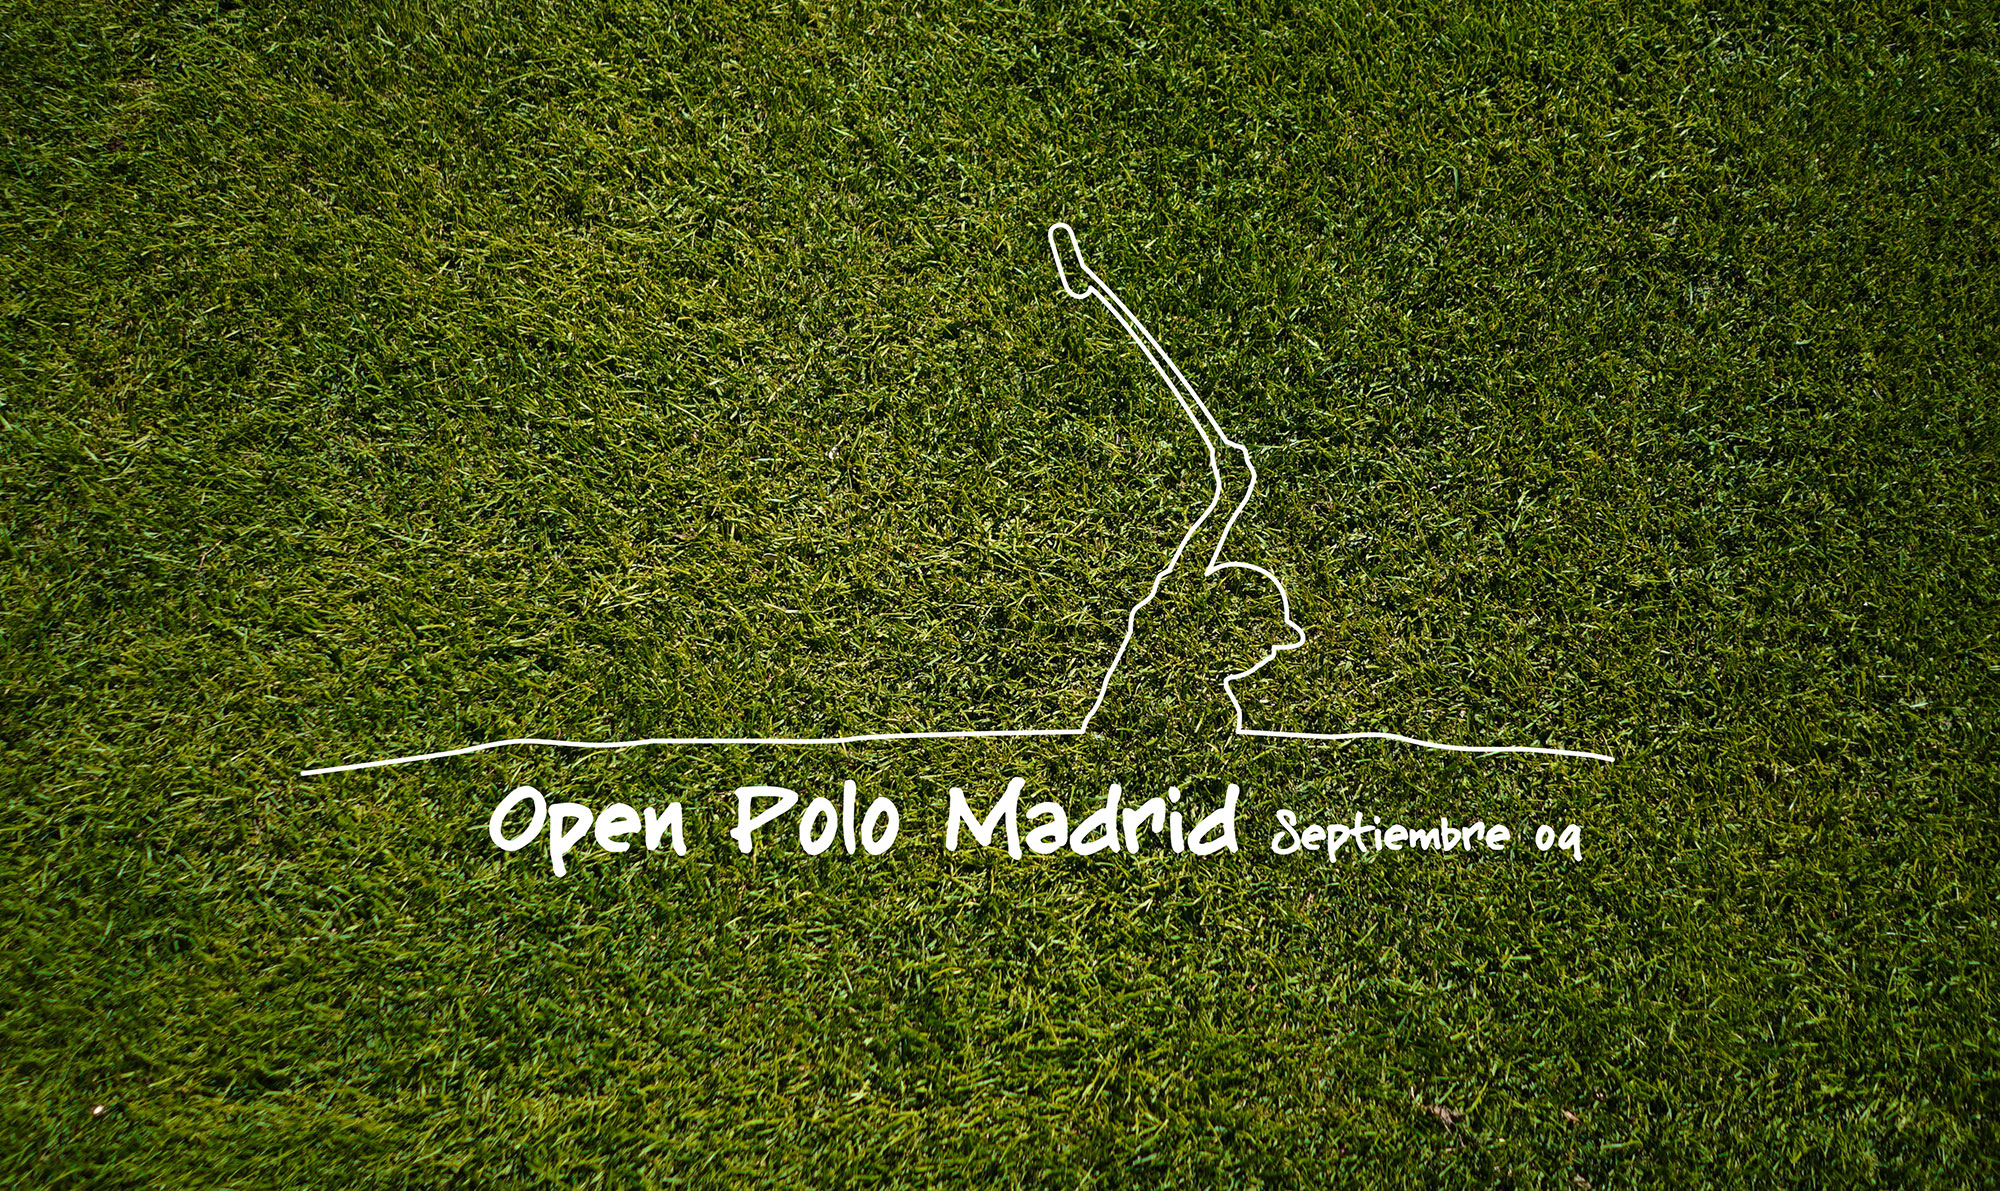 Logotipo del Open Polo Madrid